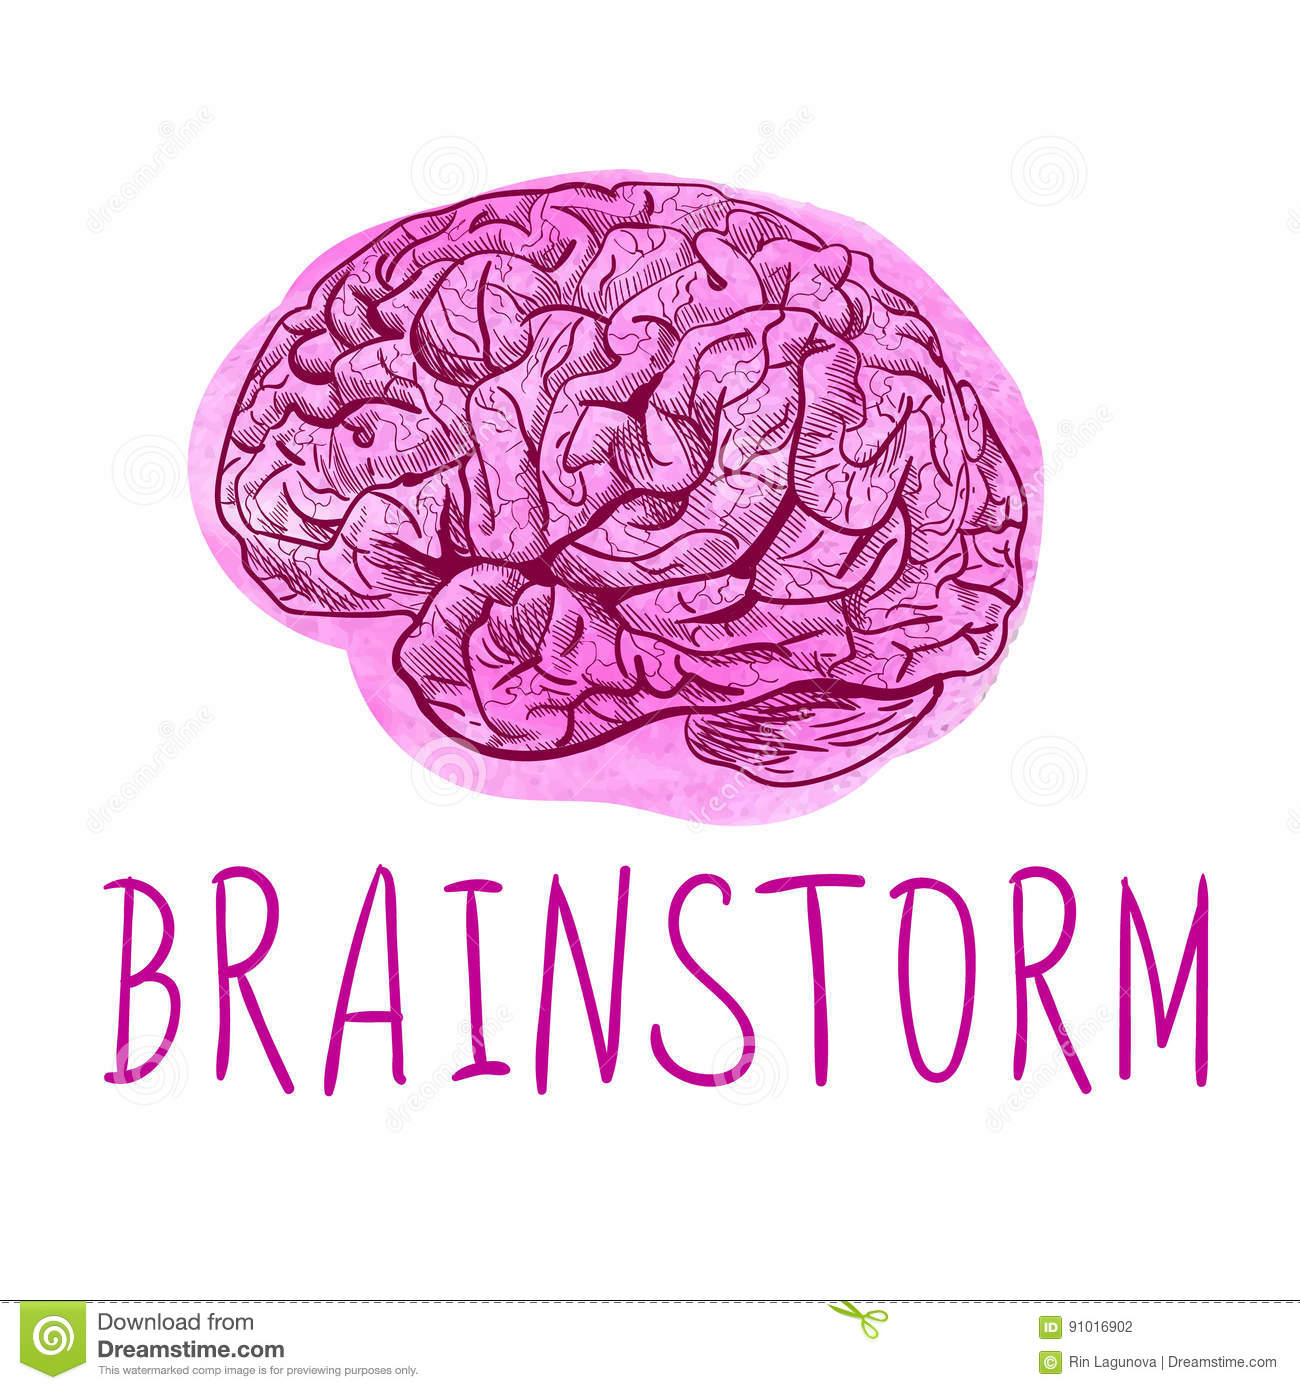 Brainstorm Letters And Drawing Of Human Brain On Paint Spot Stock